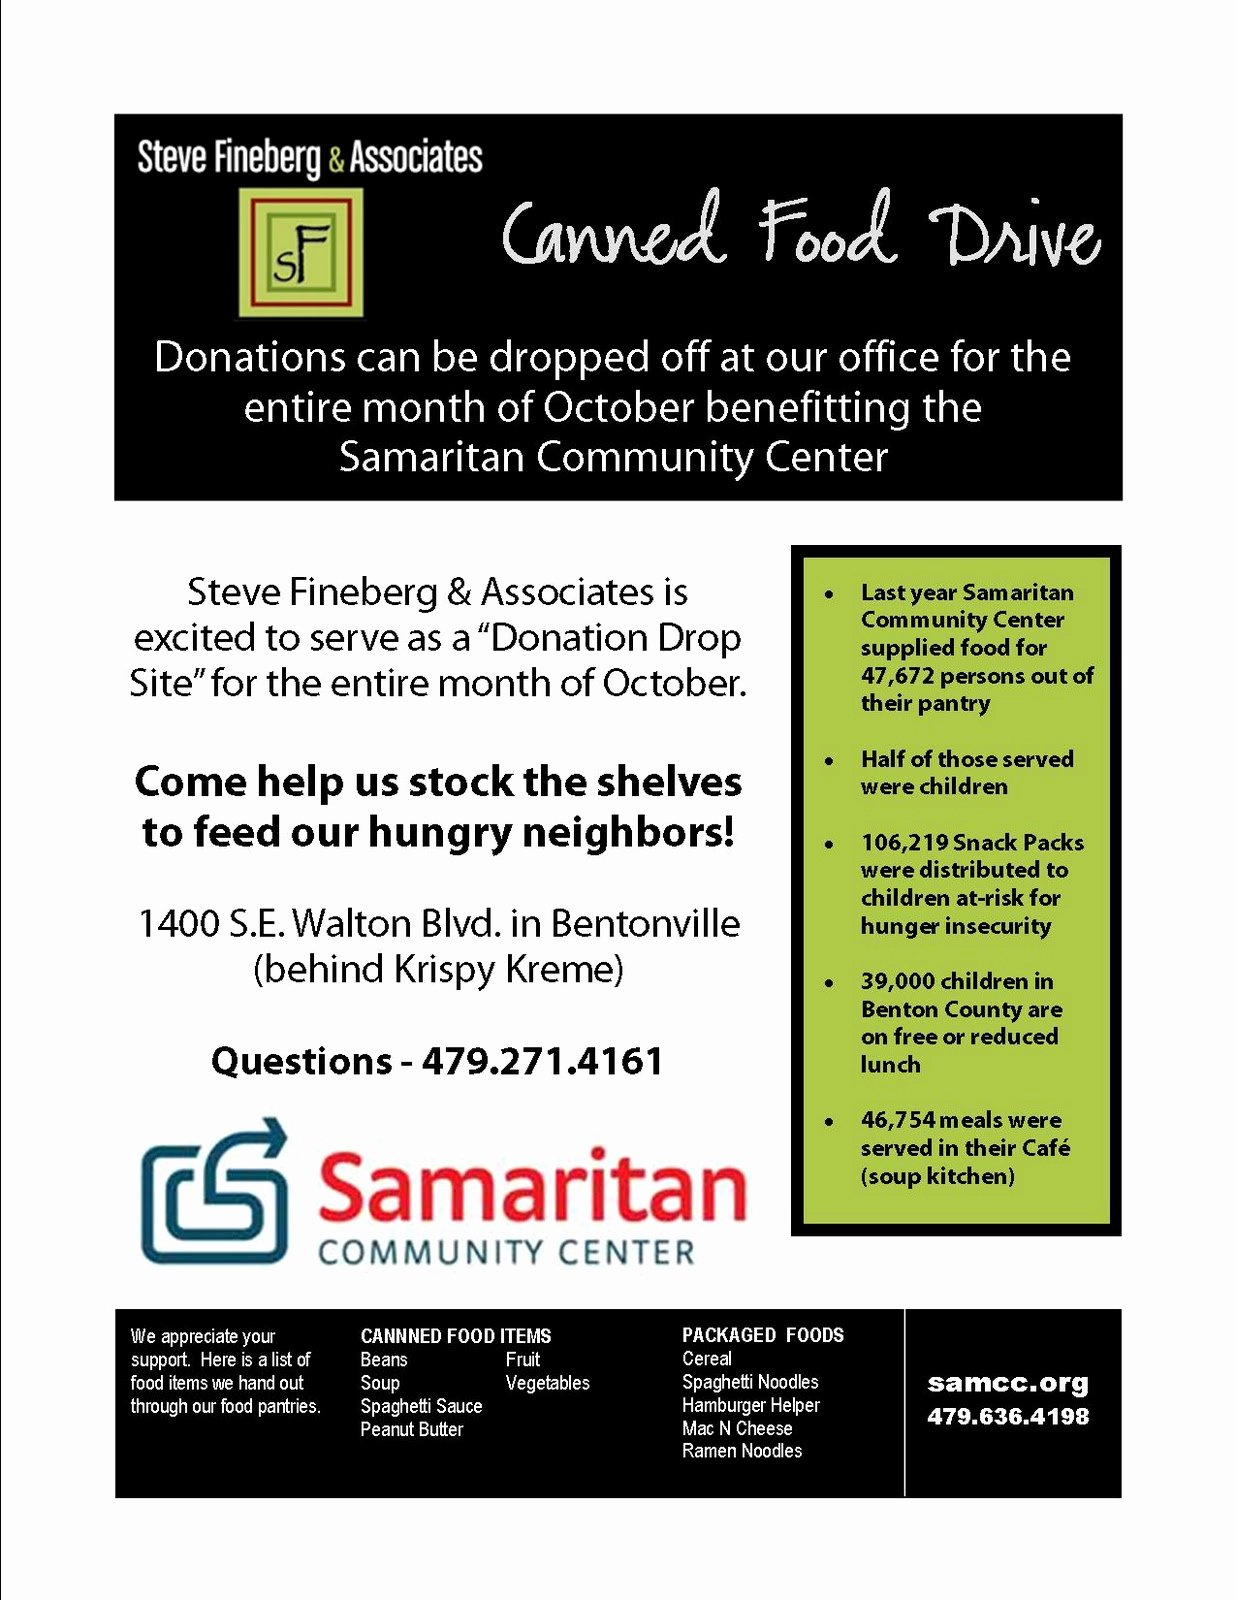 Canned Food Drive Flyer Lovely Steve Fineberg & associates Corporate Responsibility Fighting Hunger In northwest Arkansas